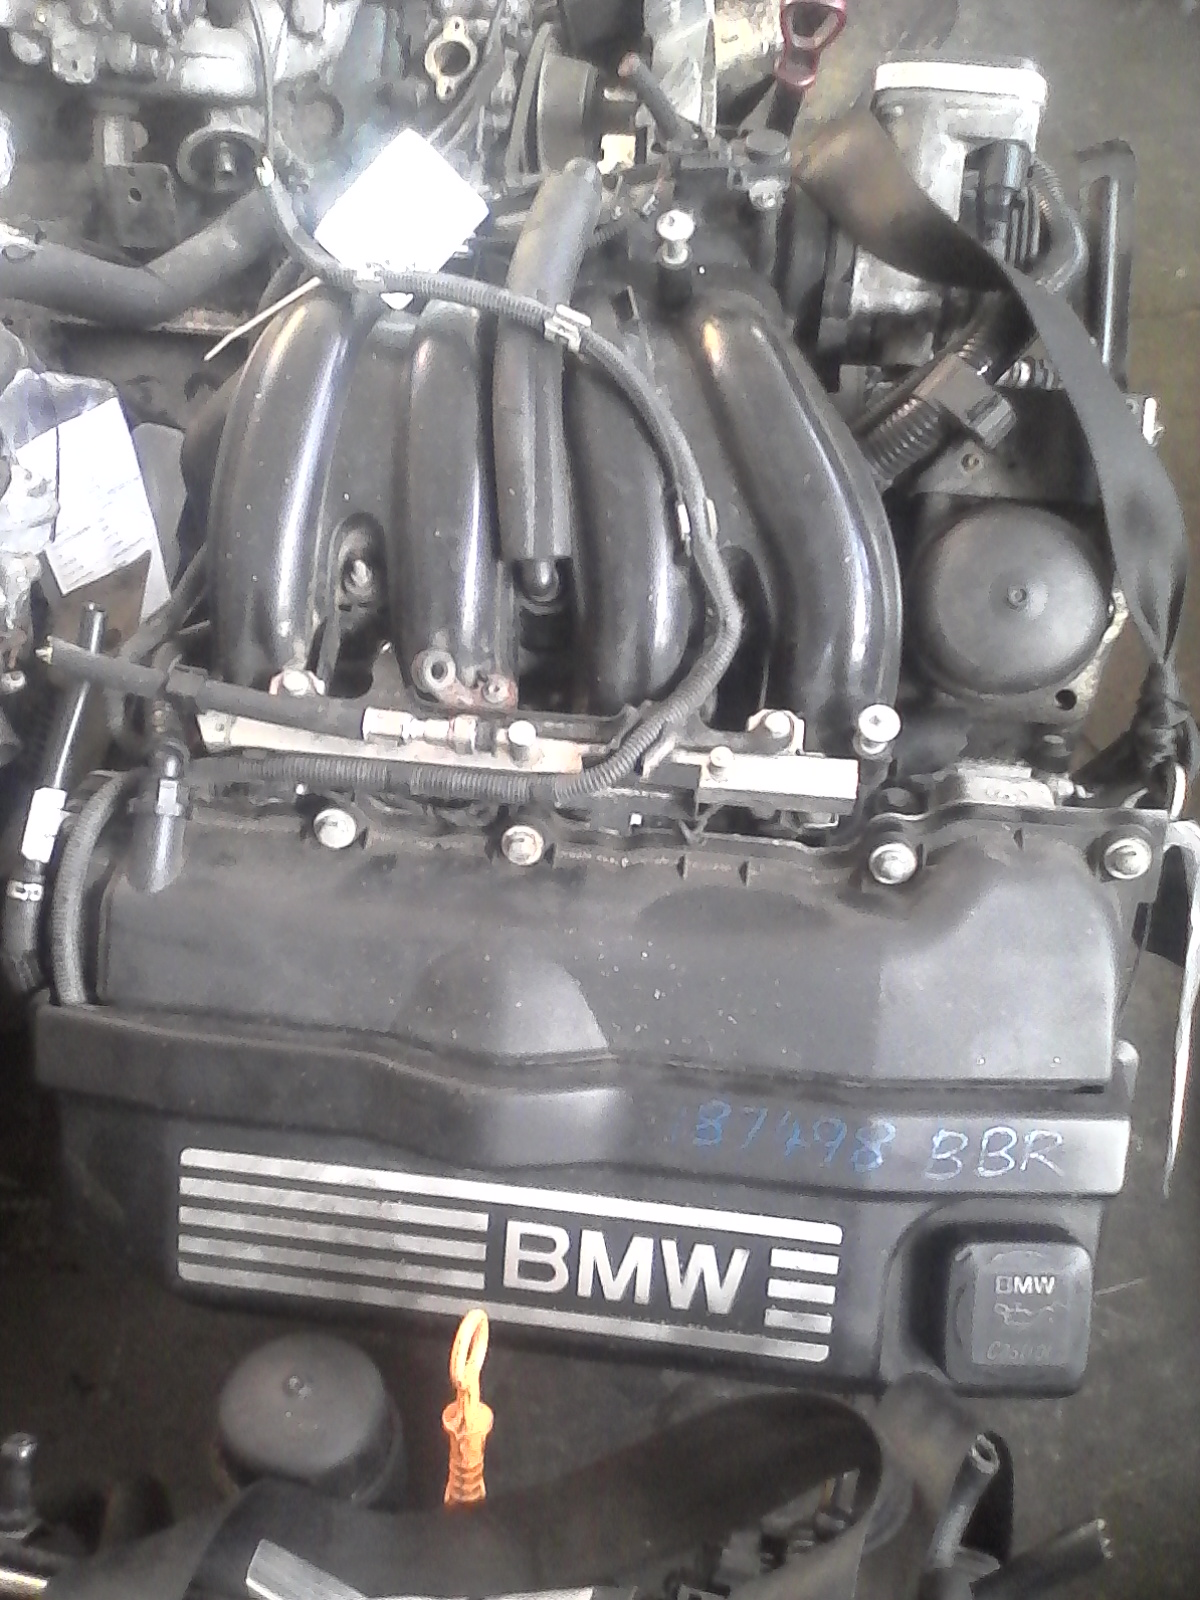 BMW 318 E46 facelift engine for sale